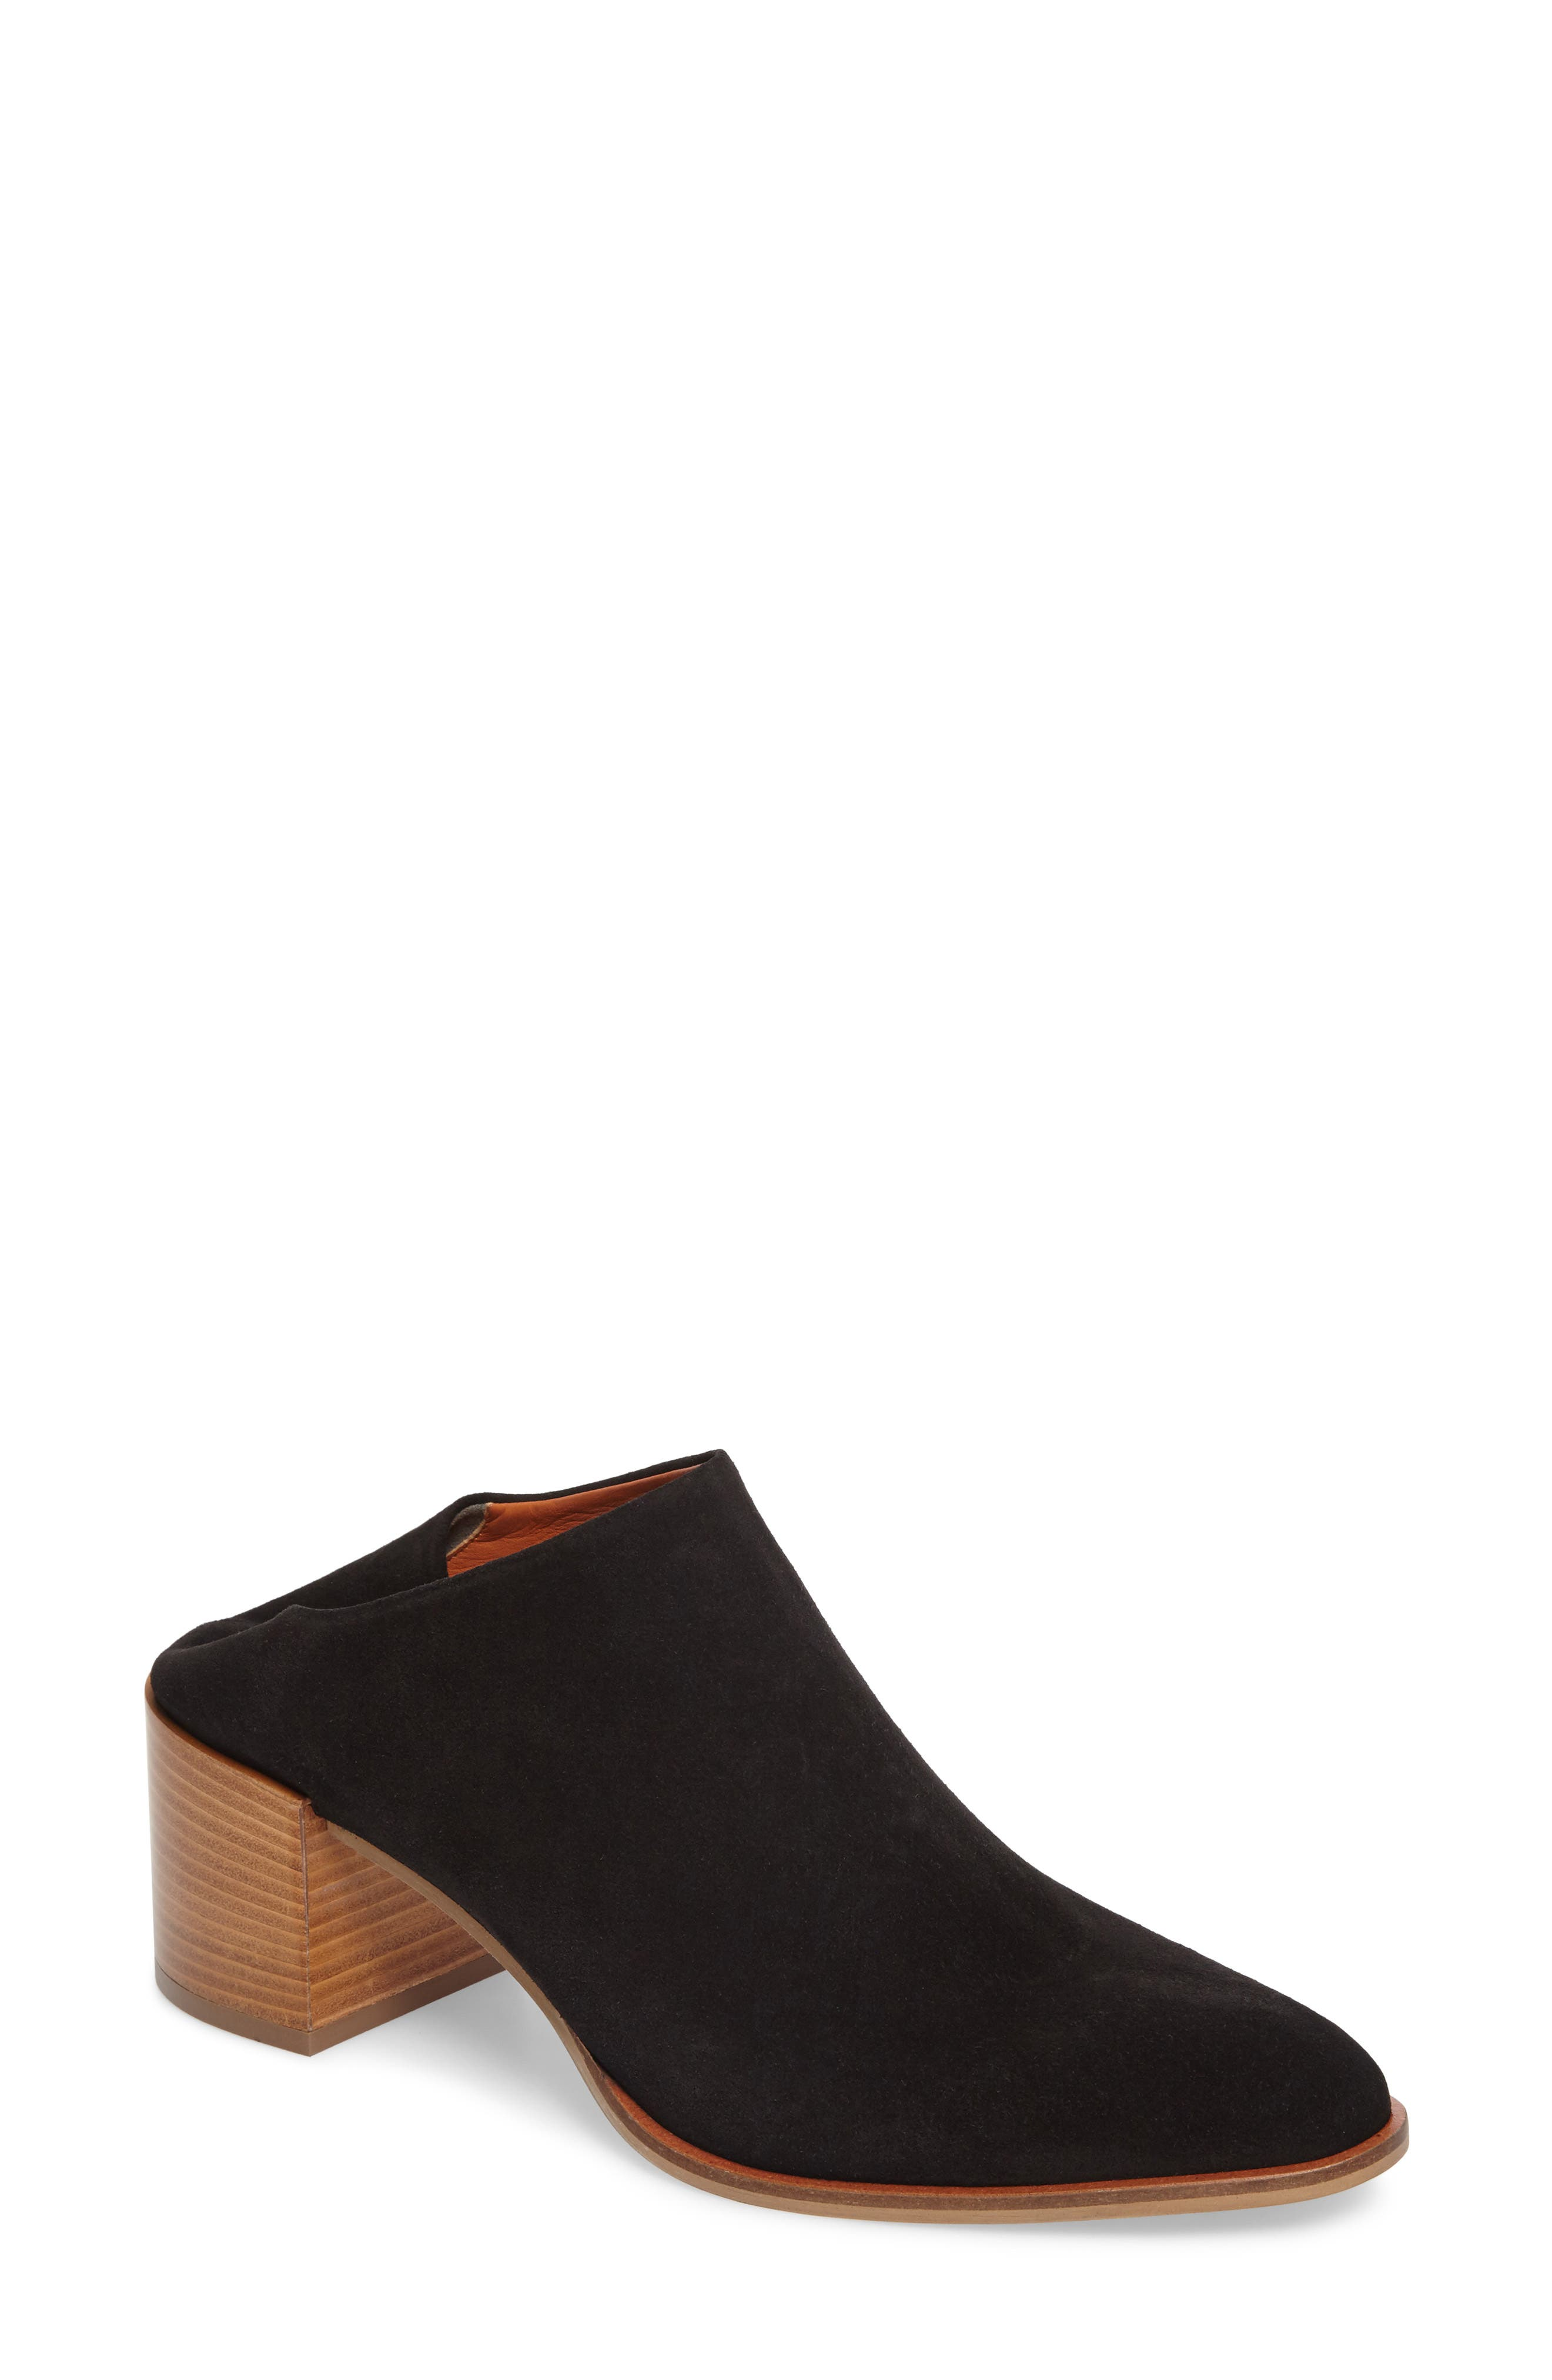 Alternate Image 1 Selected - Everlane The Suede Heel Mule (Women)